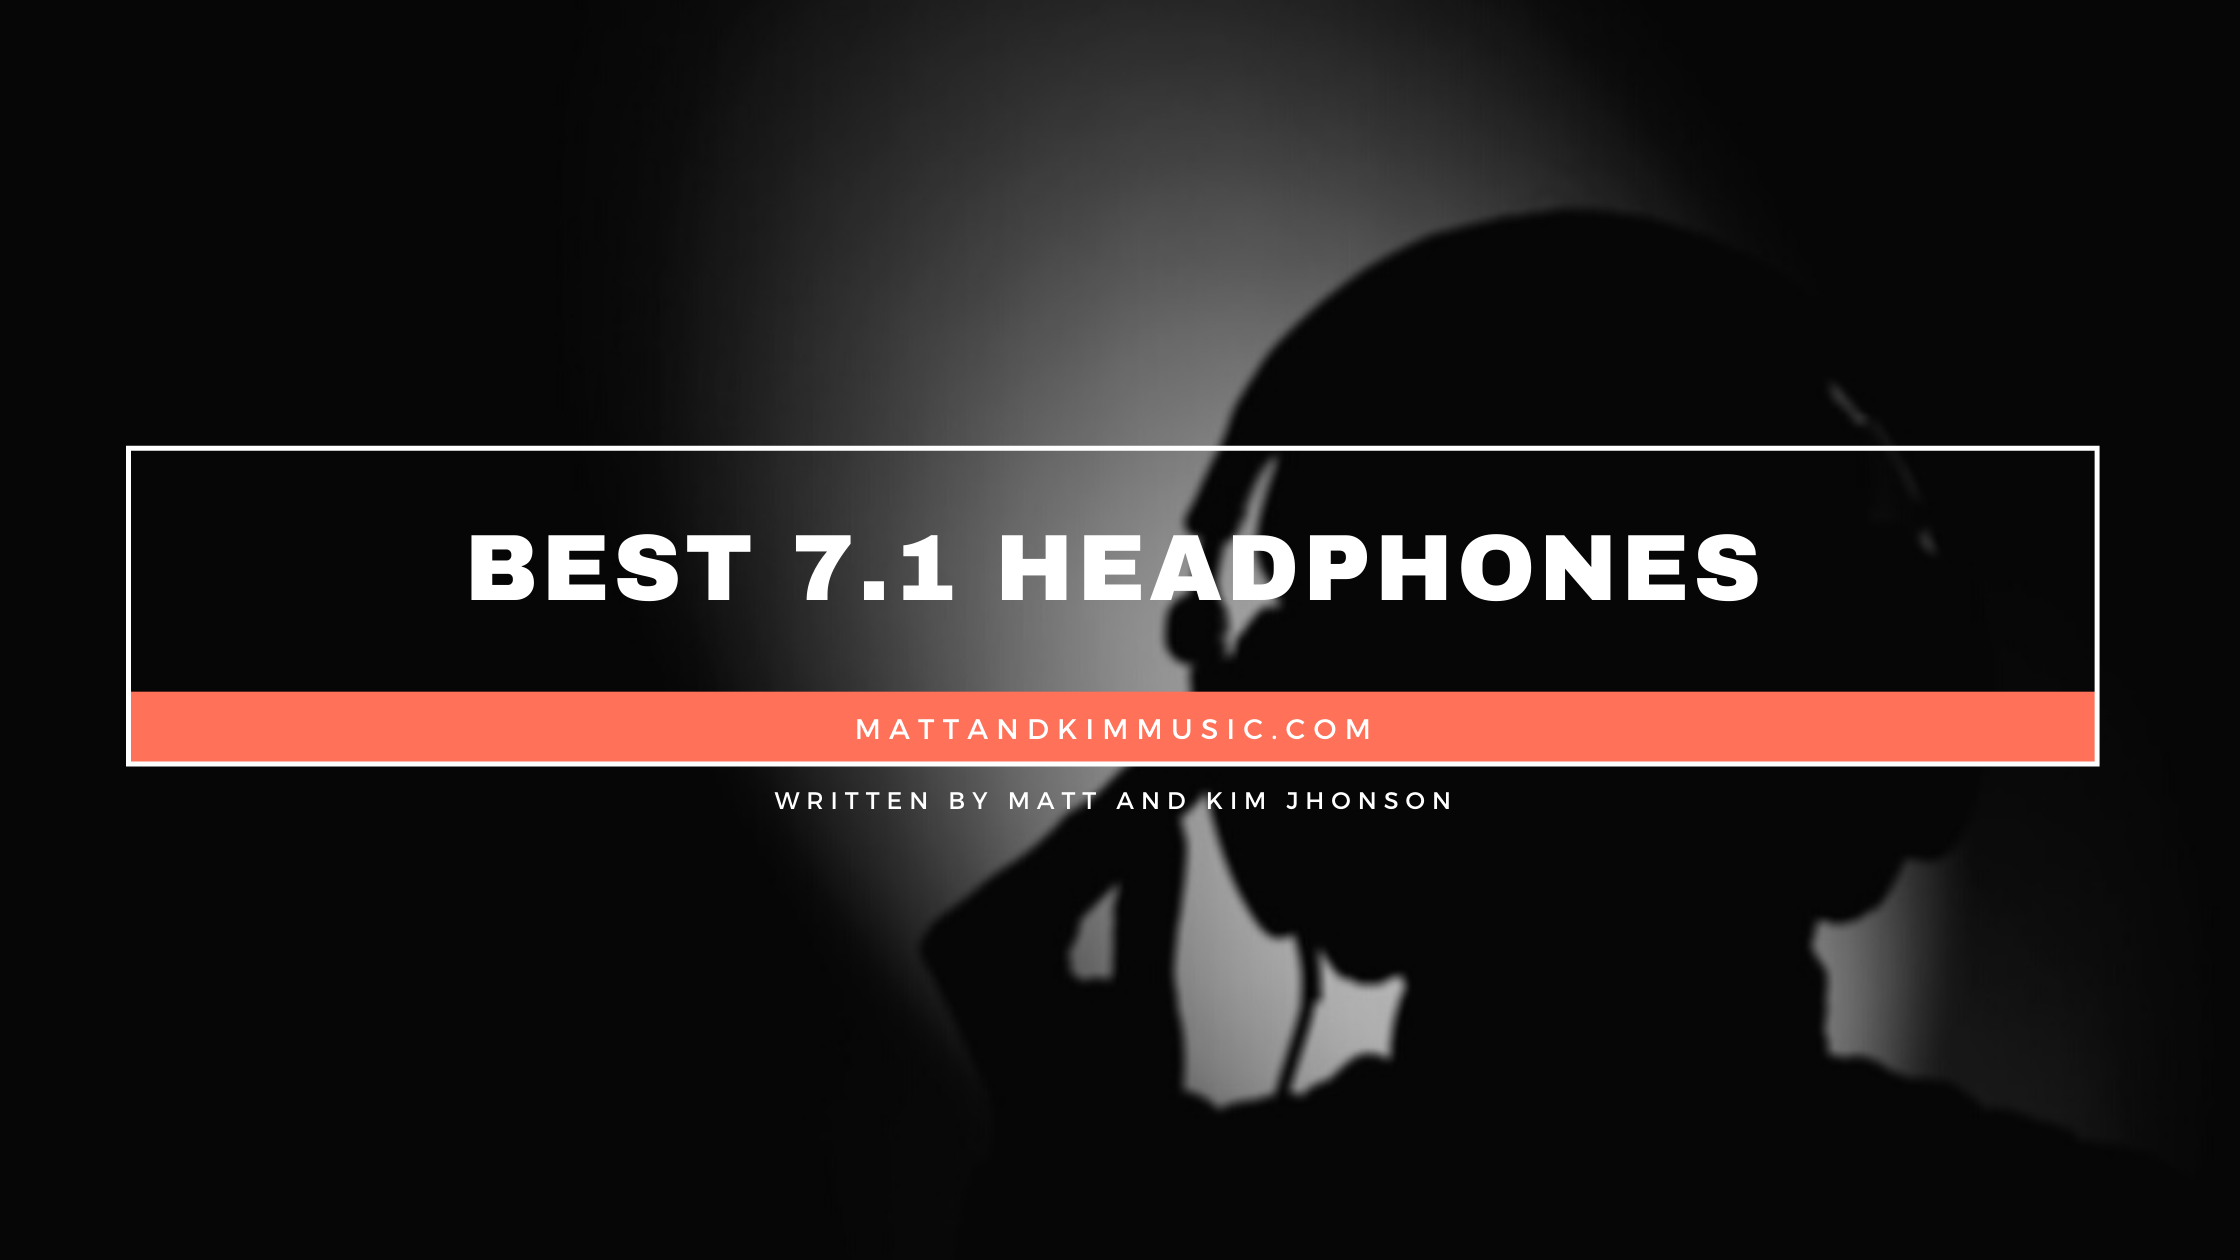 best 7.1 headphones